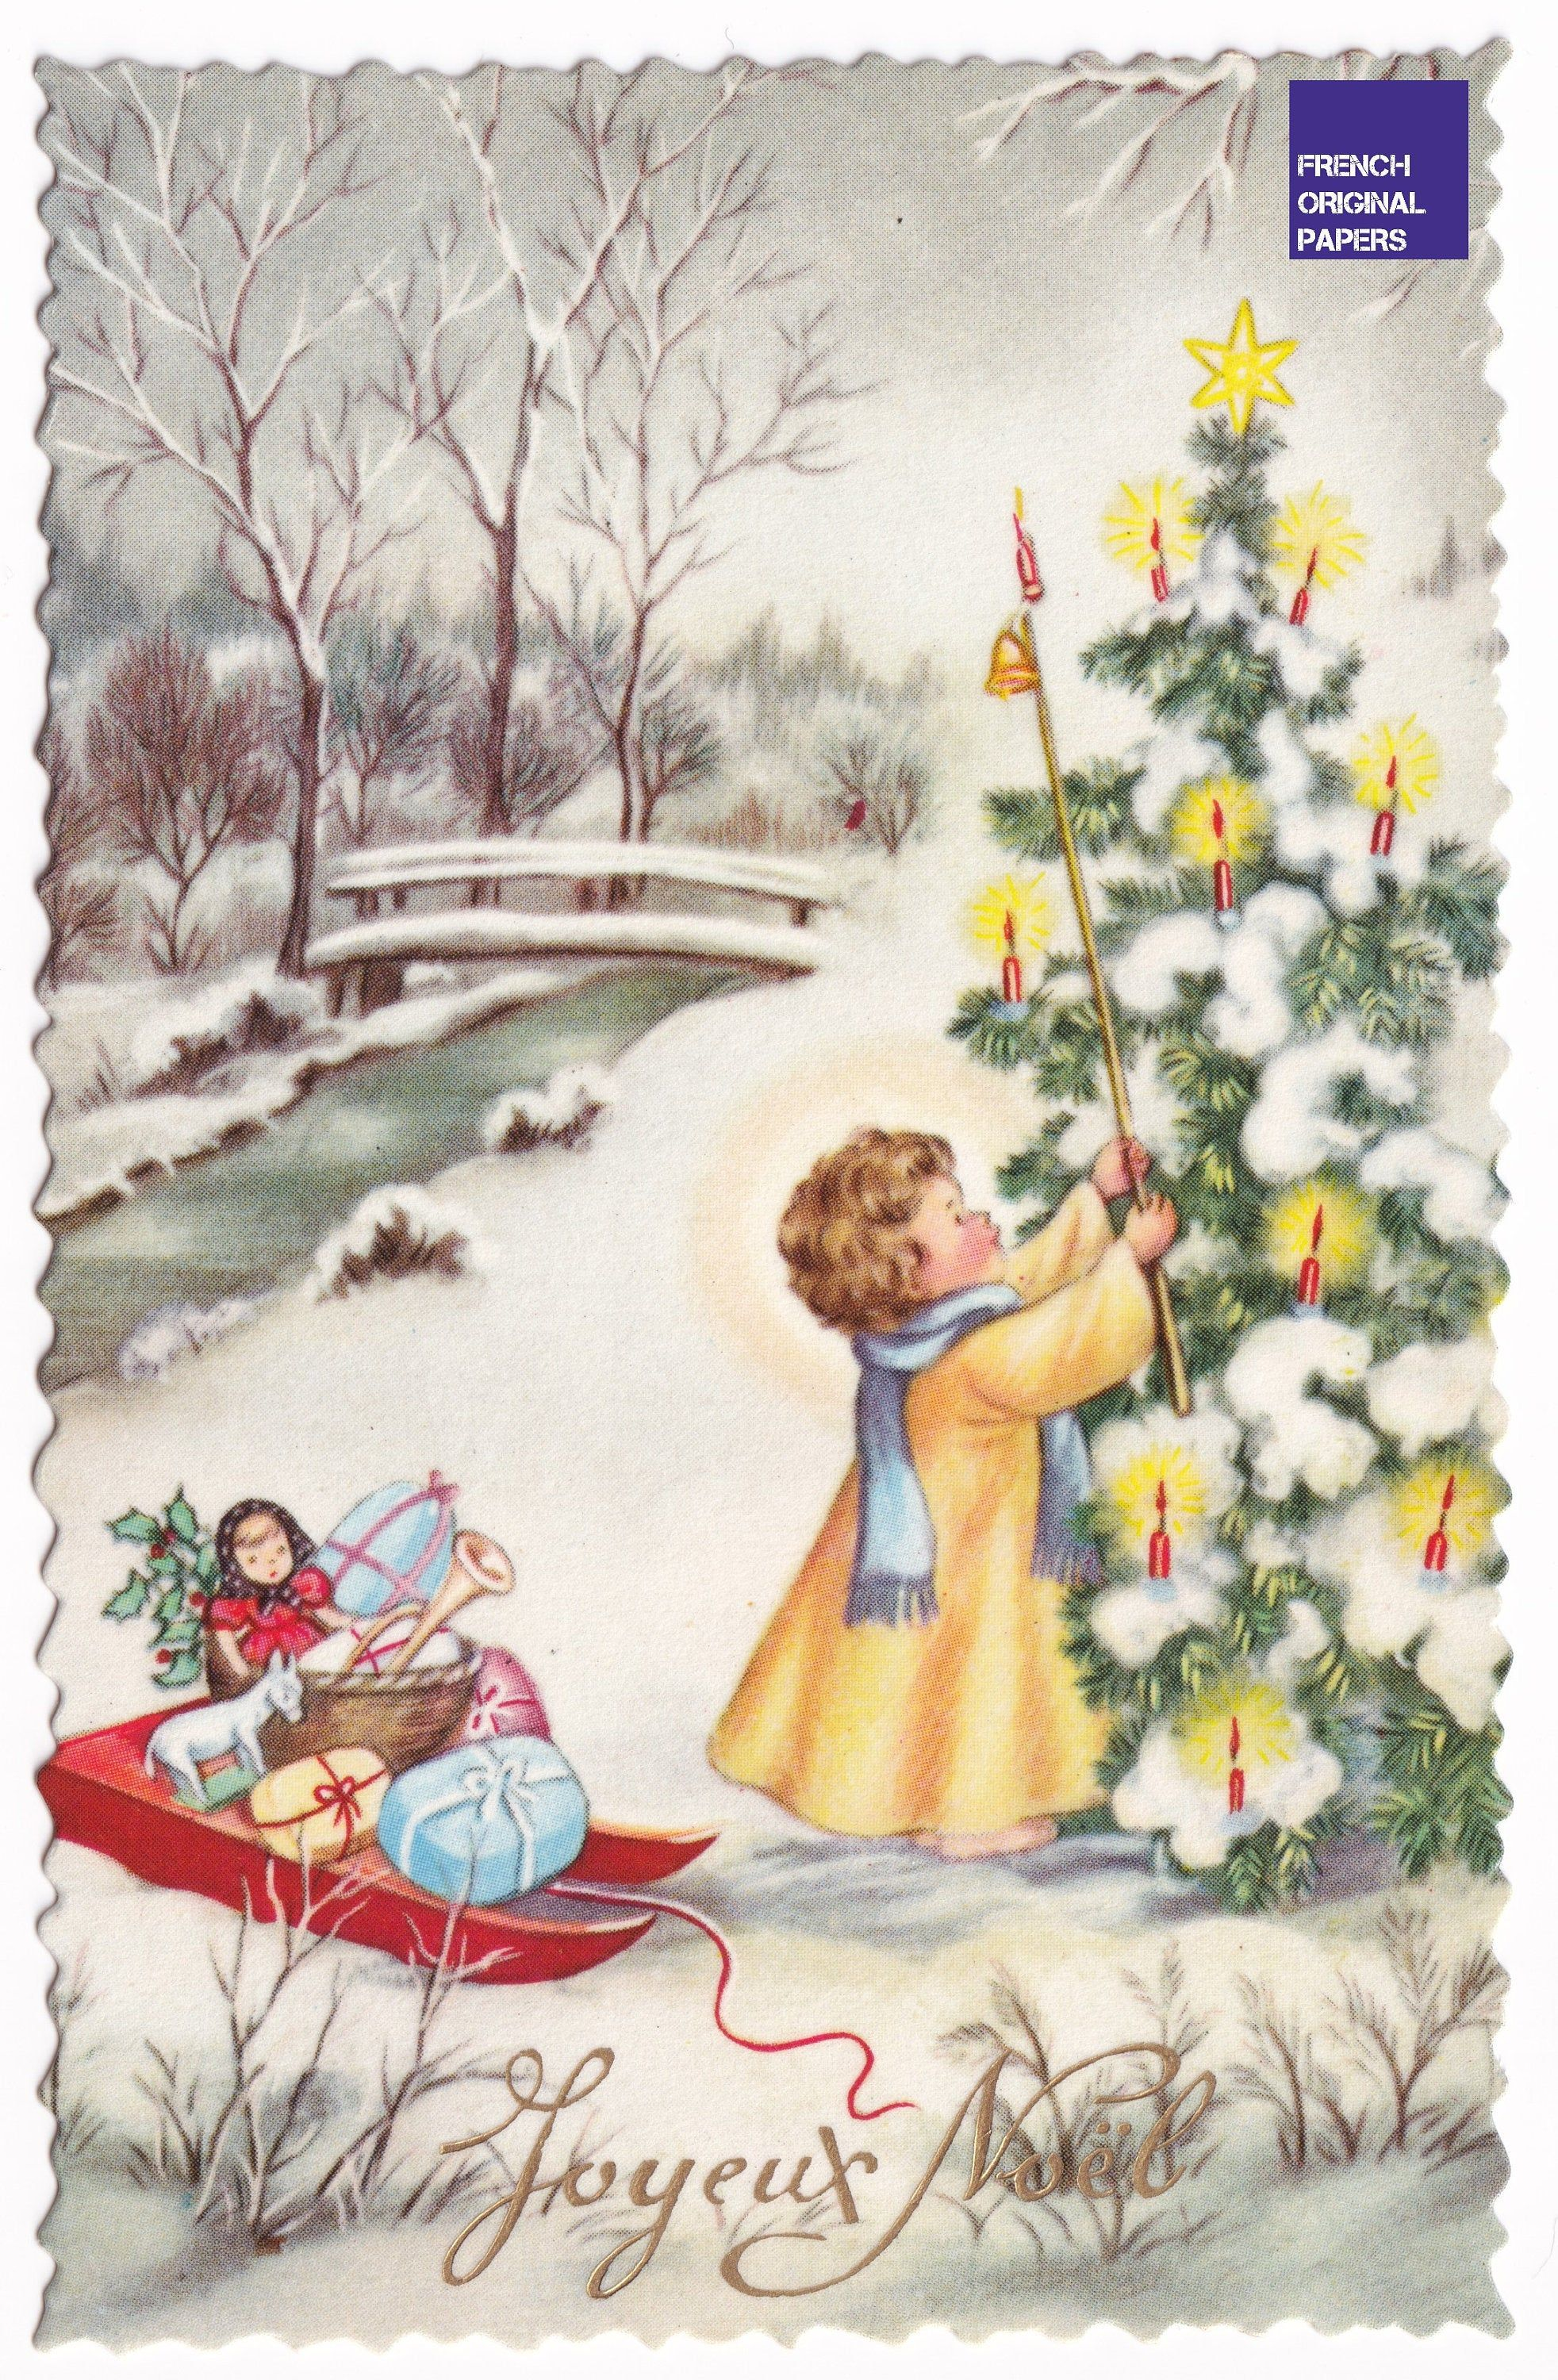 Merry Christmas 1950 S Lovely Vintage French Unused Greeting Postcard Luge Hood Toy Doll Gift Snow Winter Graphism Mountain Tree Candel In 2020 Vintage Postcard Postcard Doll Gift